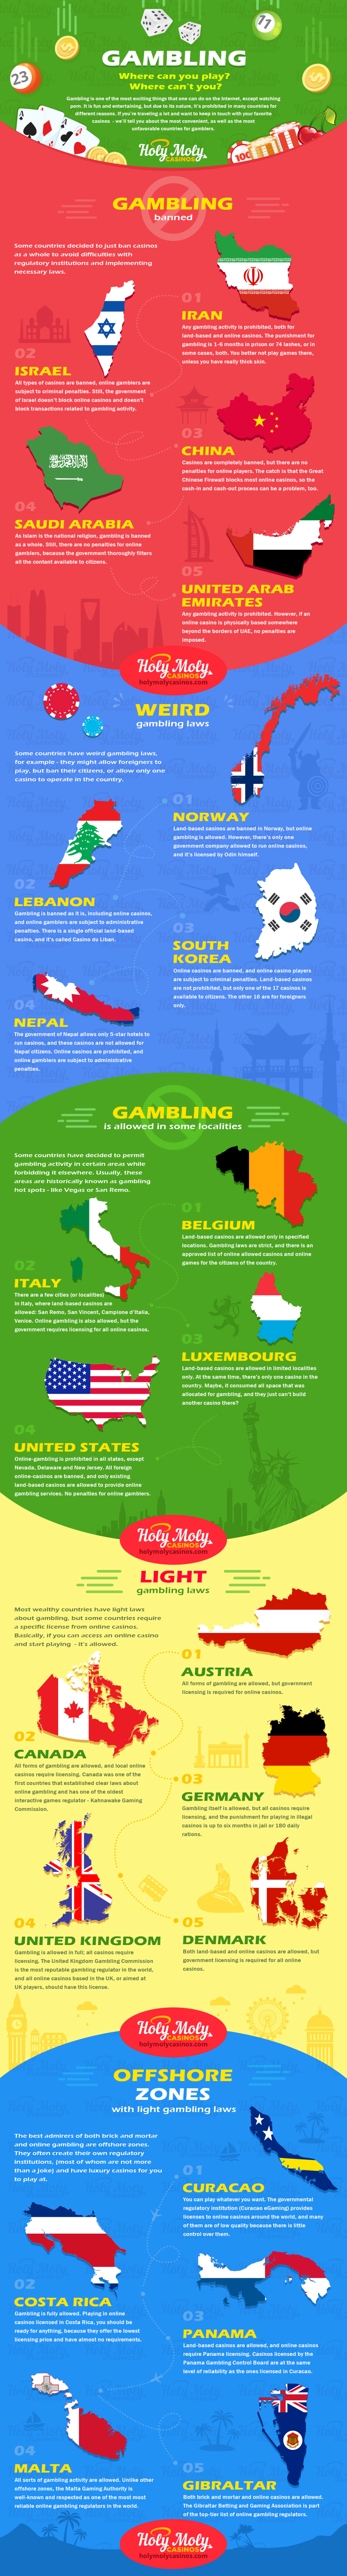 Gambling Laws Around the World: The Good, The Bad, and The Weird! - Infographic